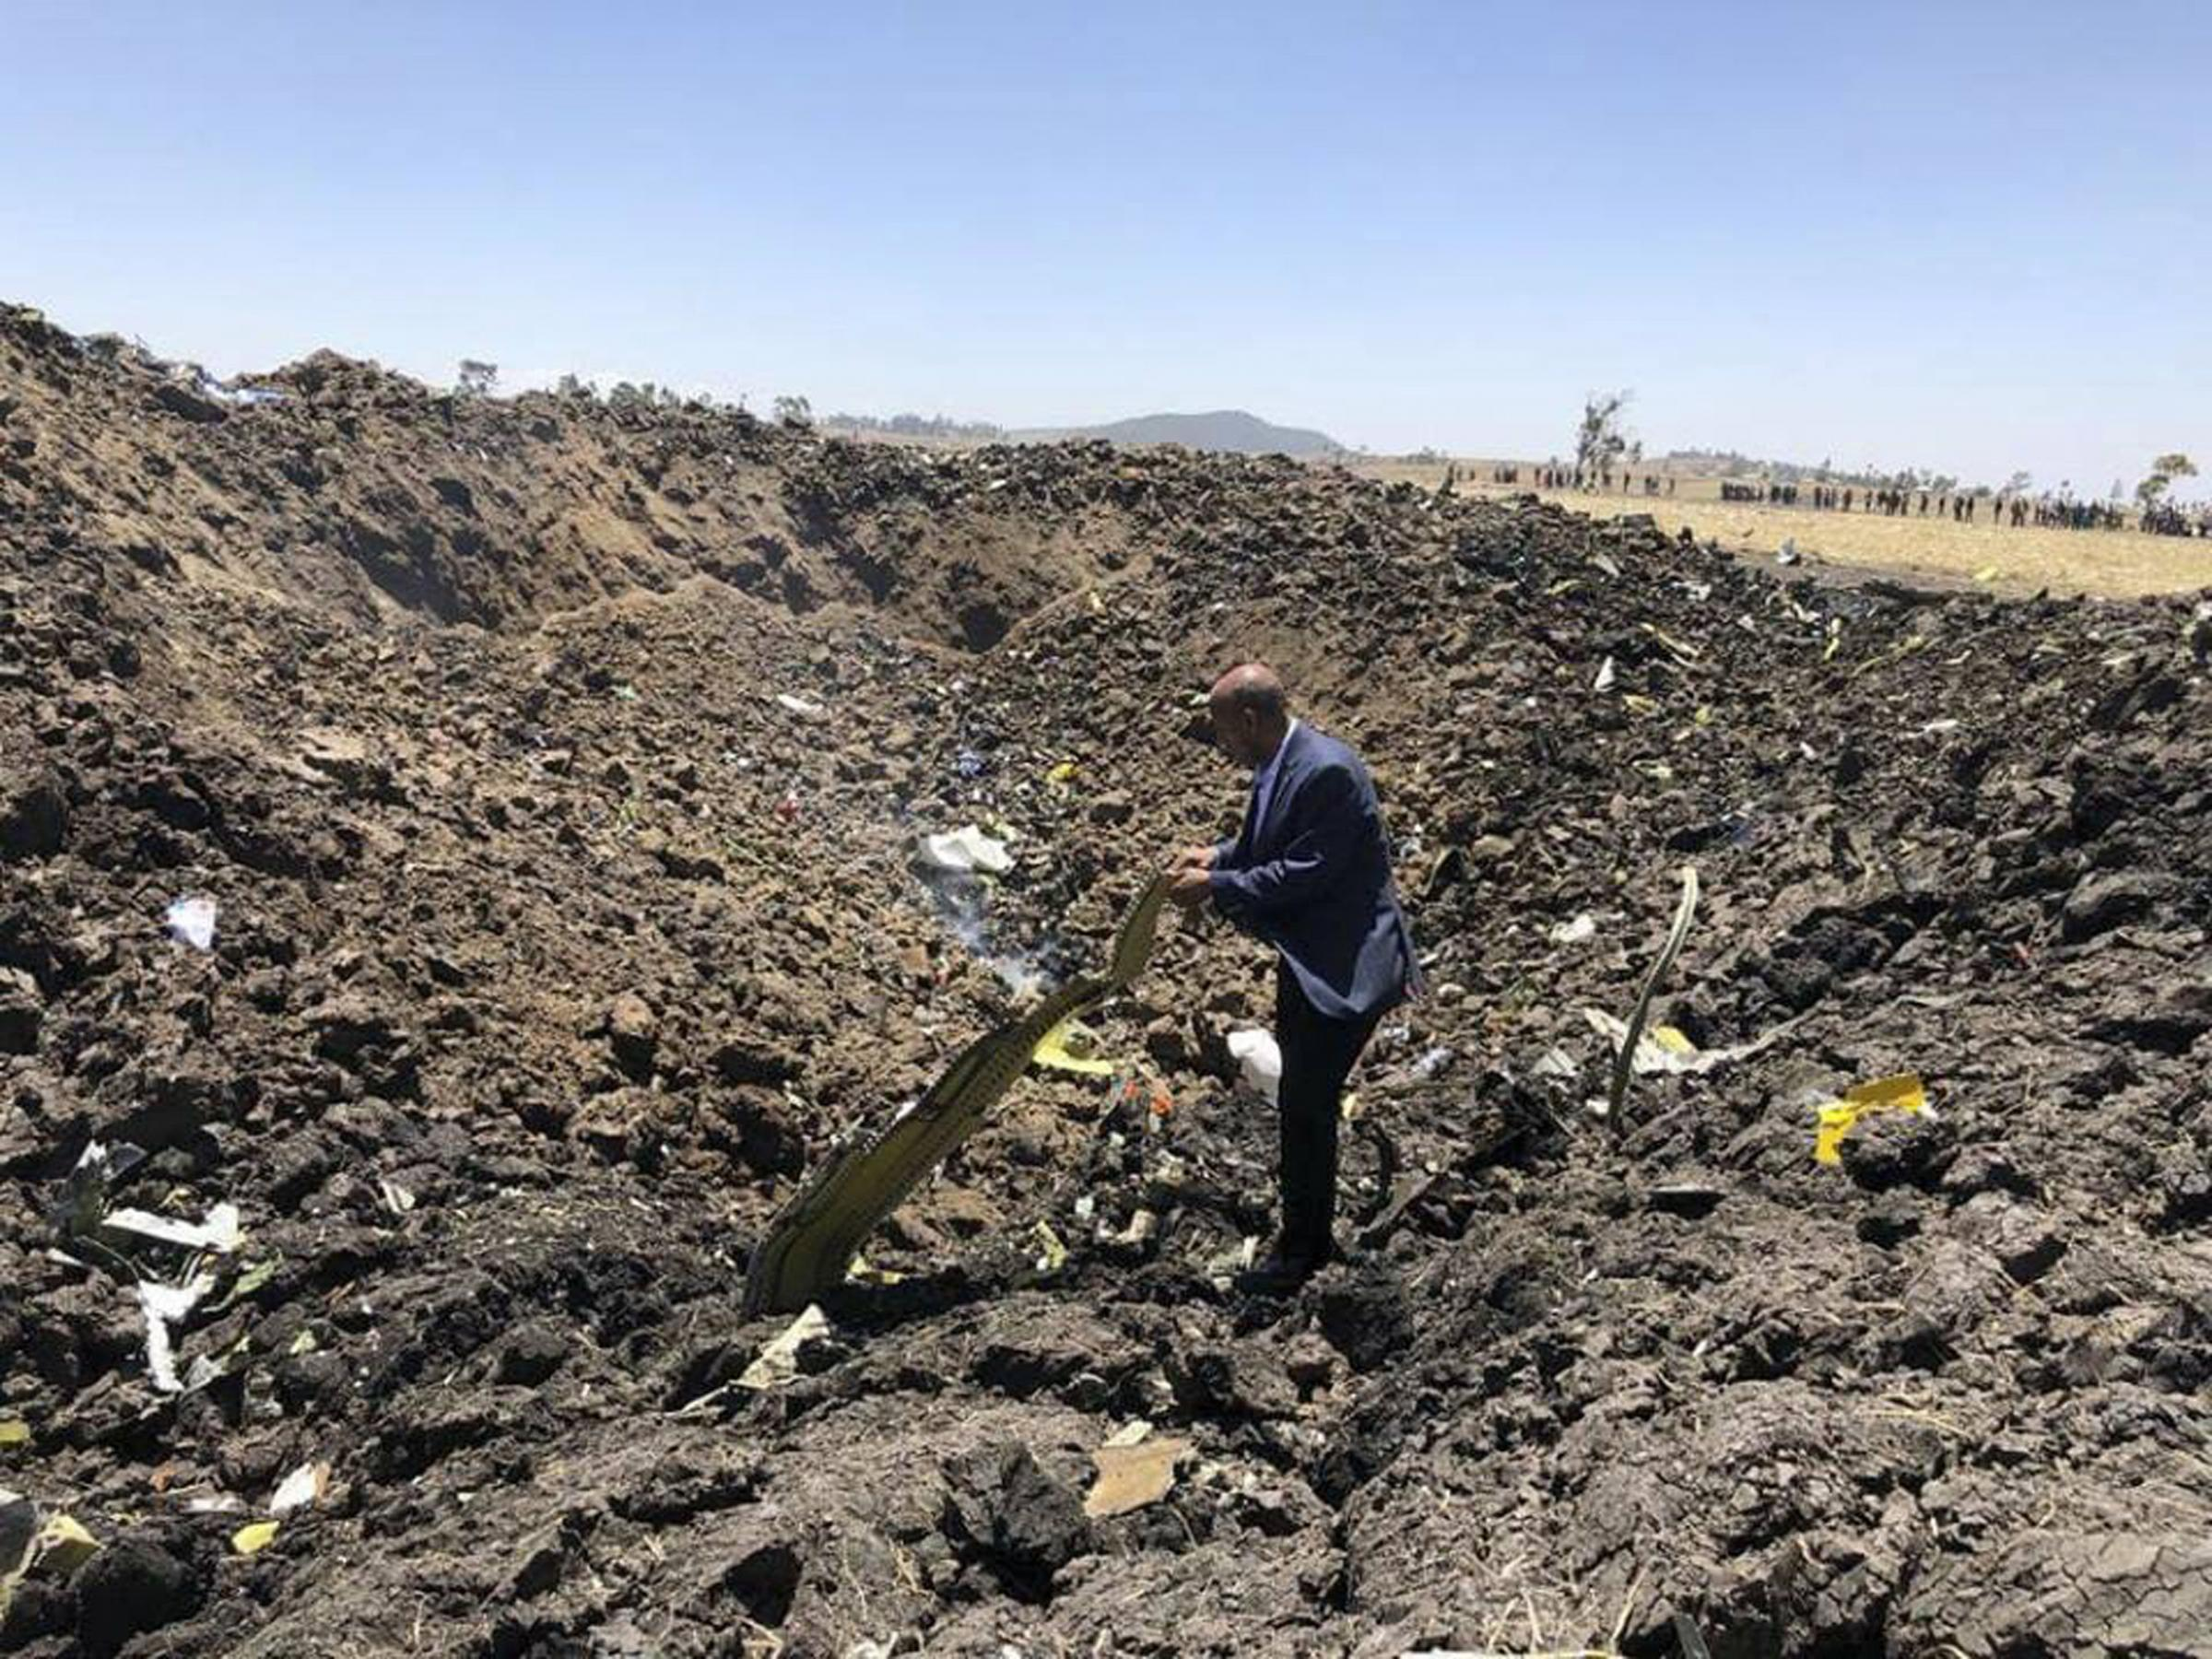 The wreckage after the Ethiopian Airlines plane crash, which killed 157